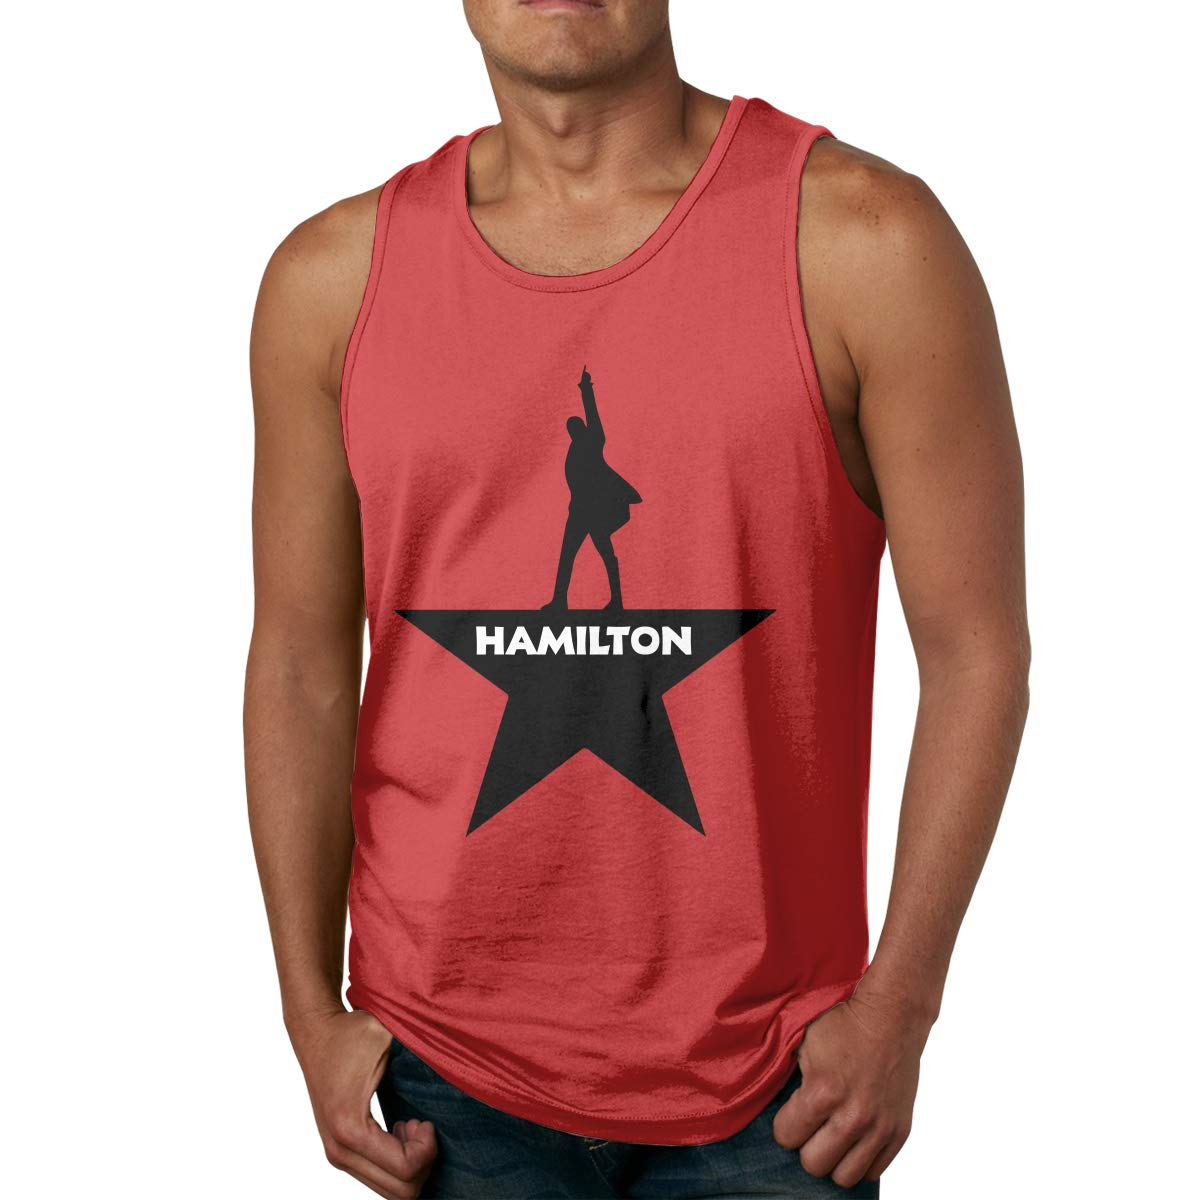 Cheny Musicals Hamilton Mens Tank Tops Slim Fit Muscle Shirt